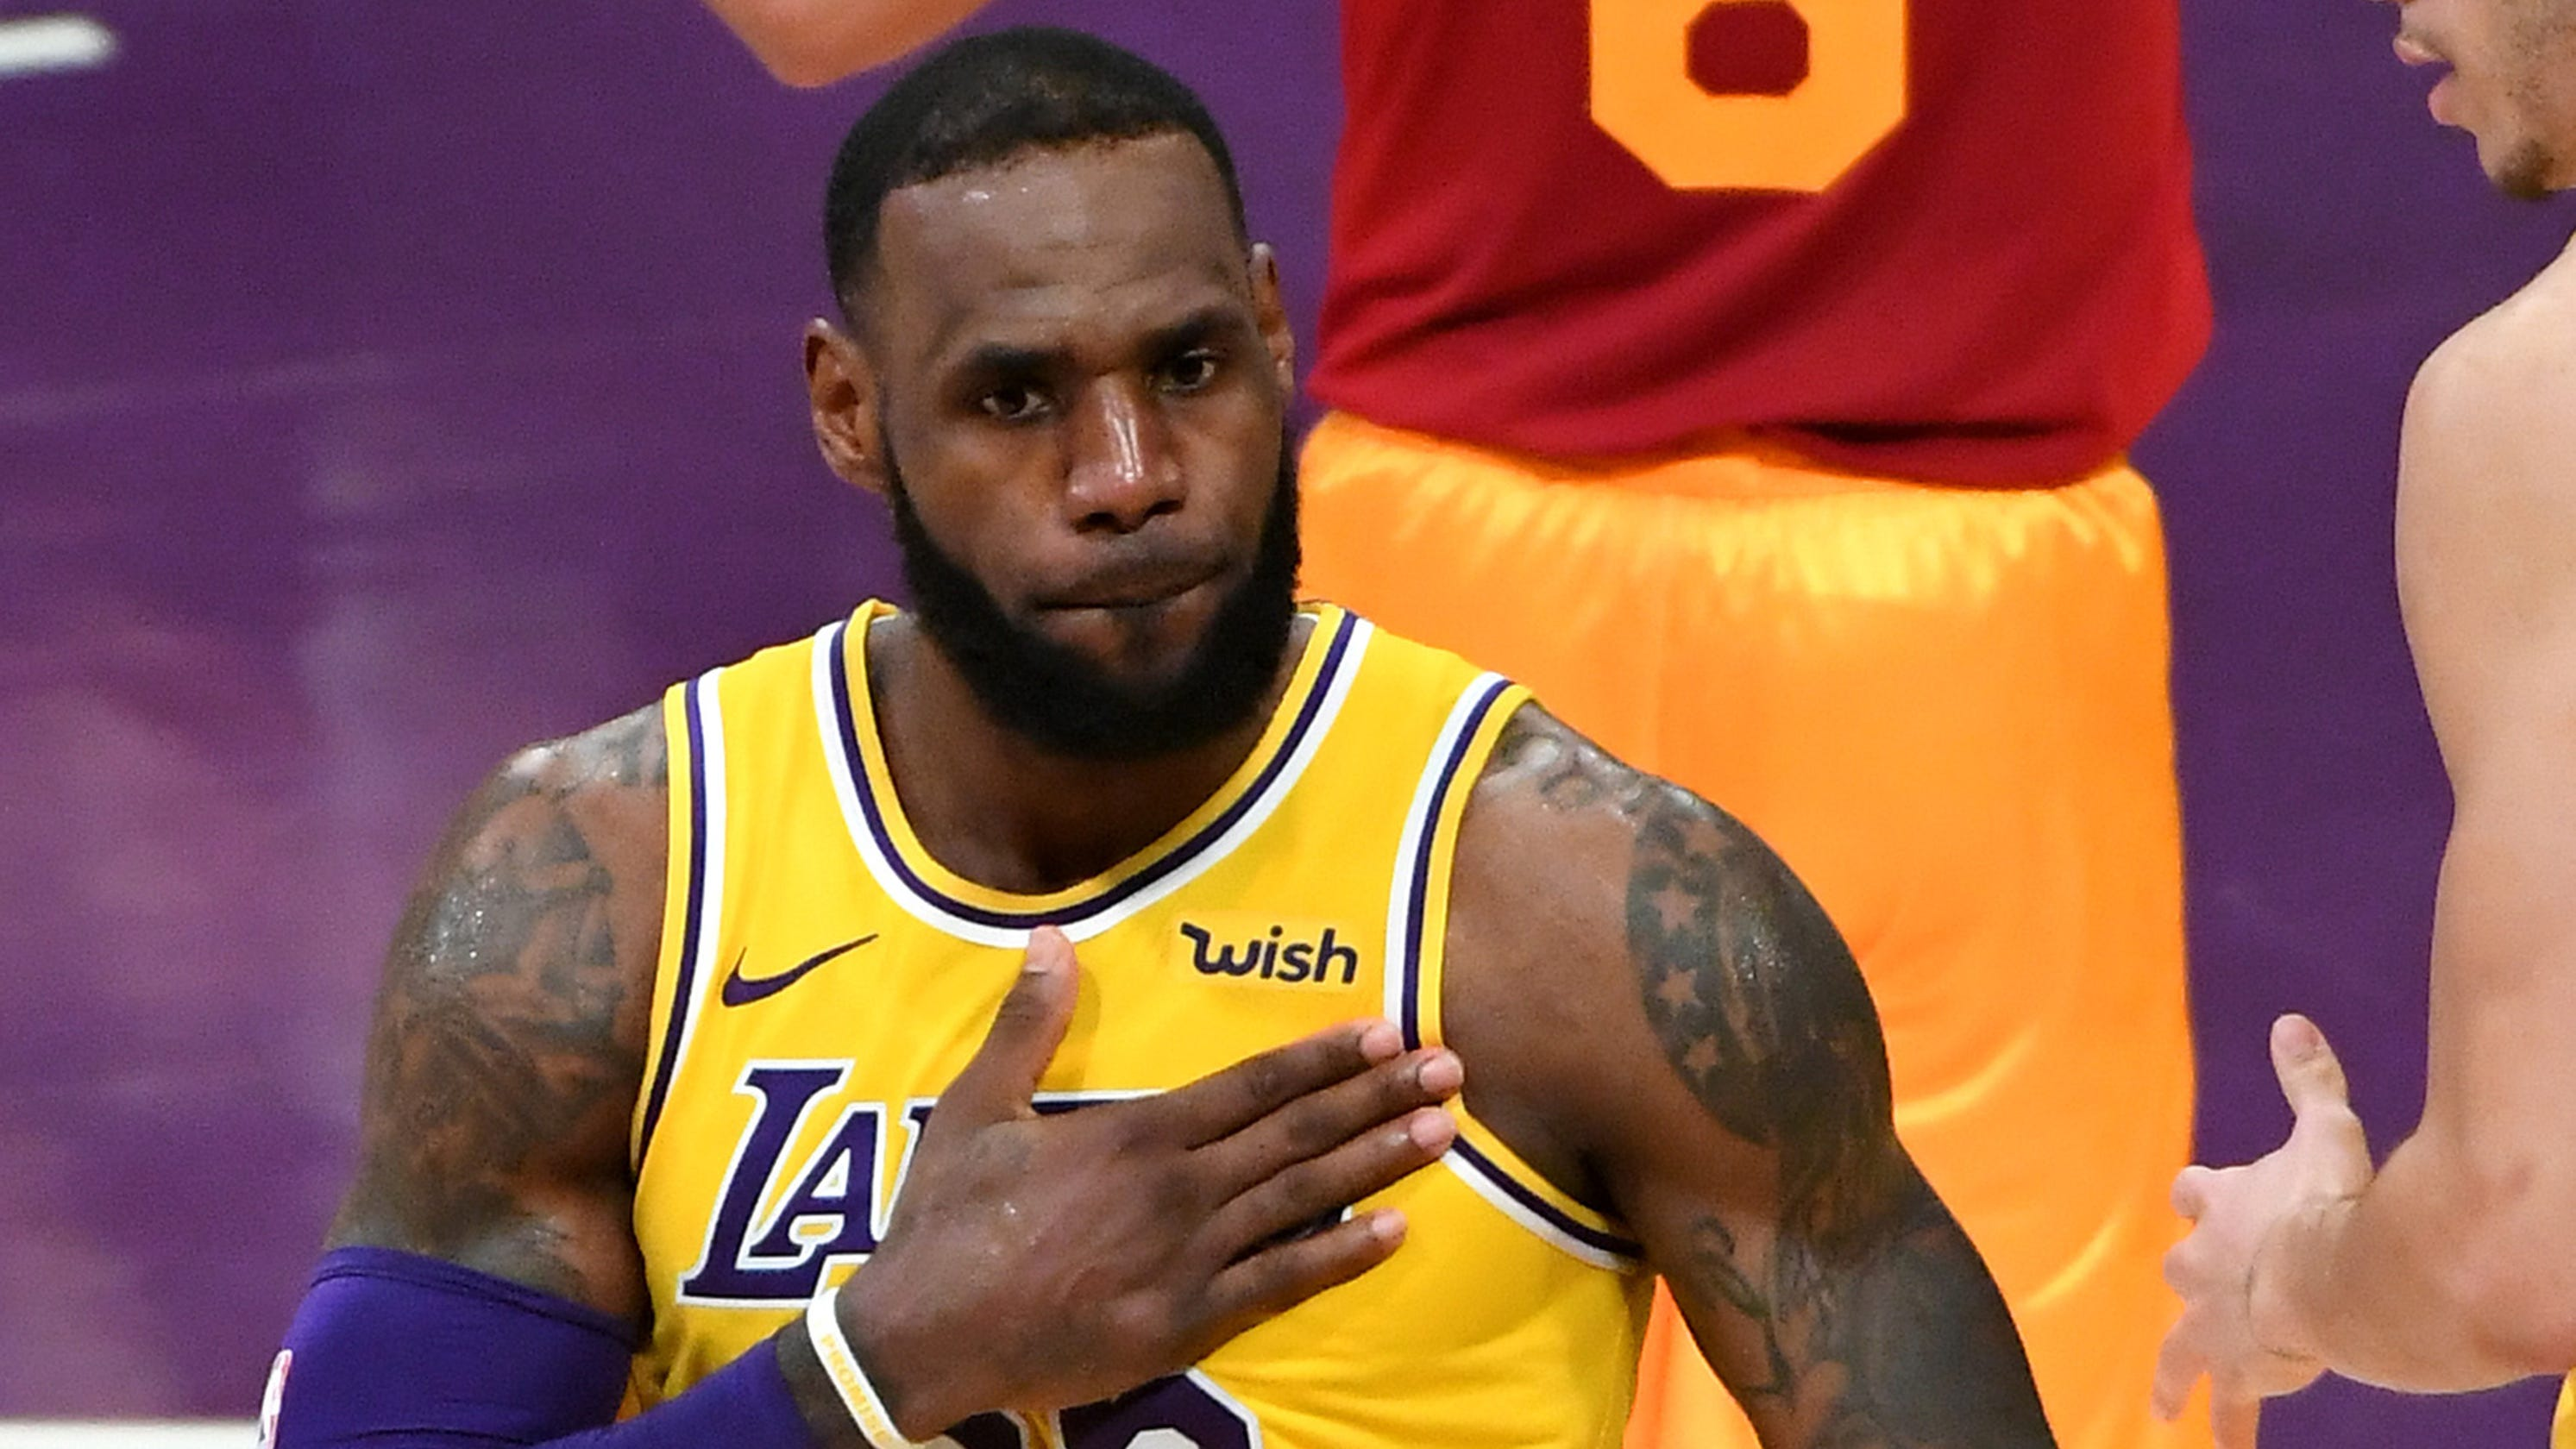 2ab498424cd Los Angeles Lakers forward LeBron James (23) pounds his chest after drawing  a foul as he scores a basket in the second half against the Indiana Pacers  at ...